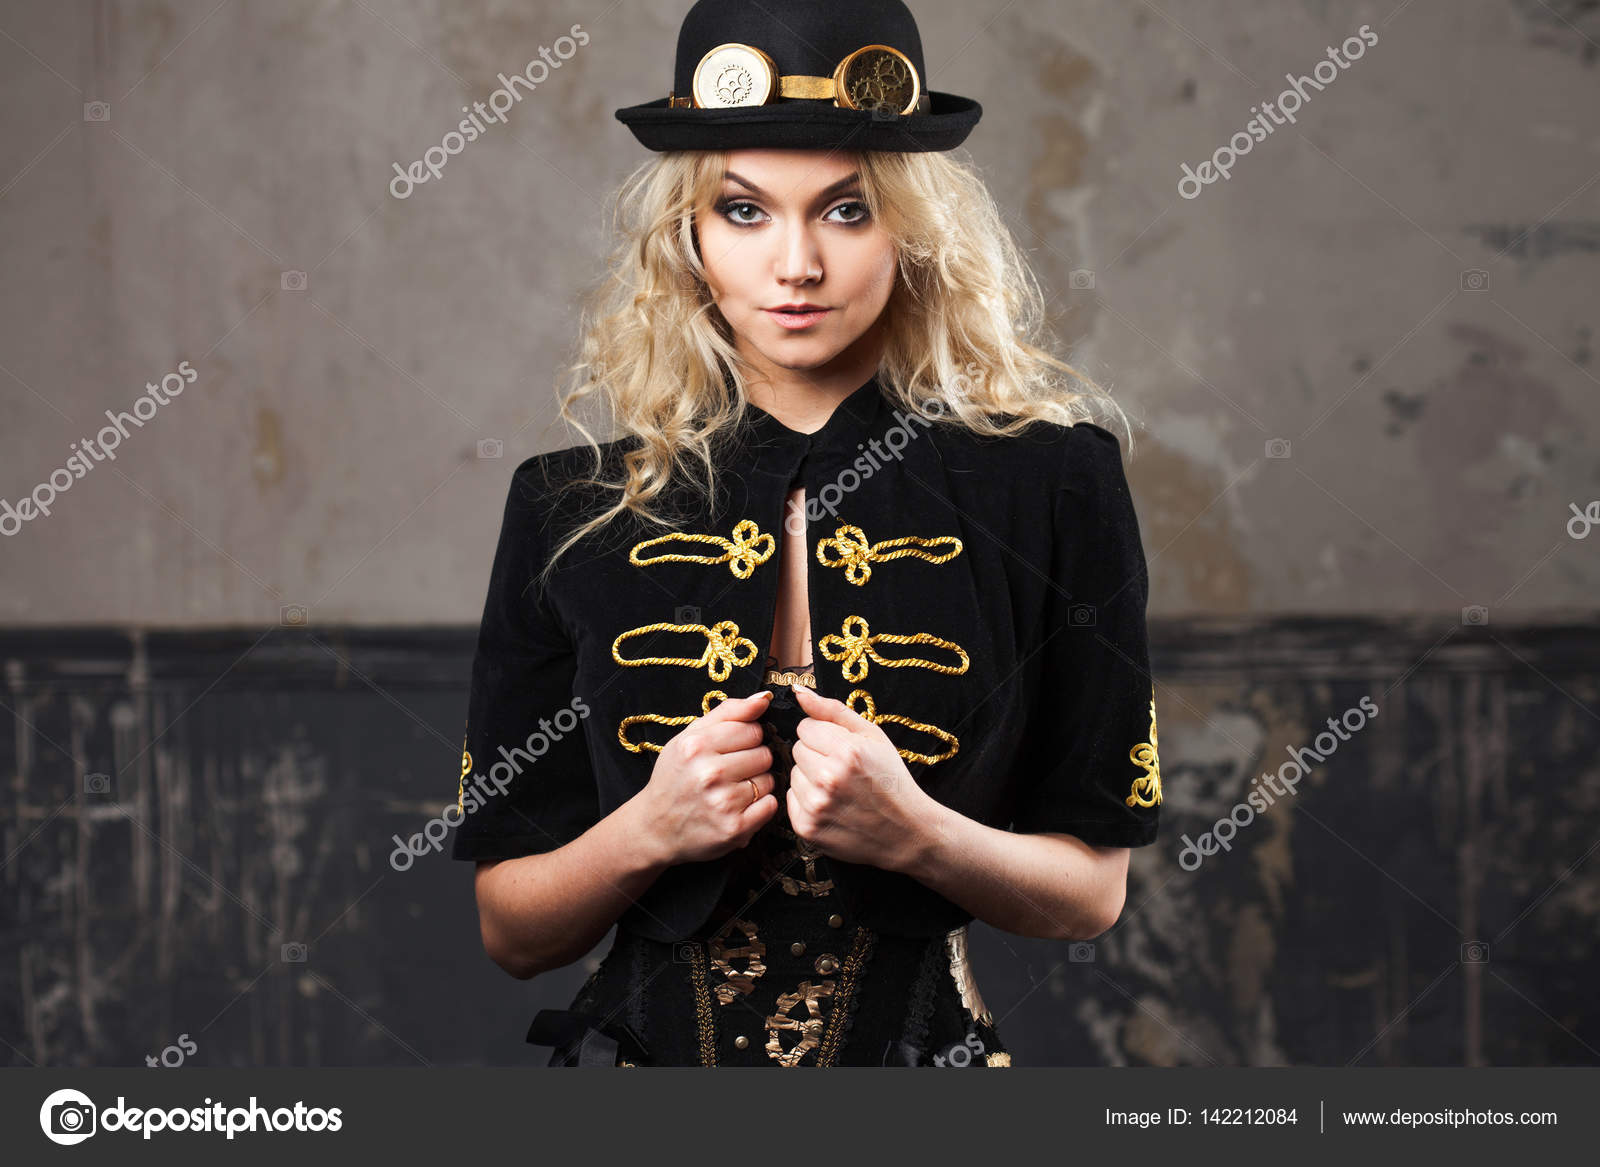 204f7ecd9aa Portrait of a beautiful steampunk woman hat-bowler hat over grunge  background. — Stock